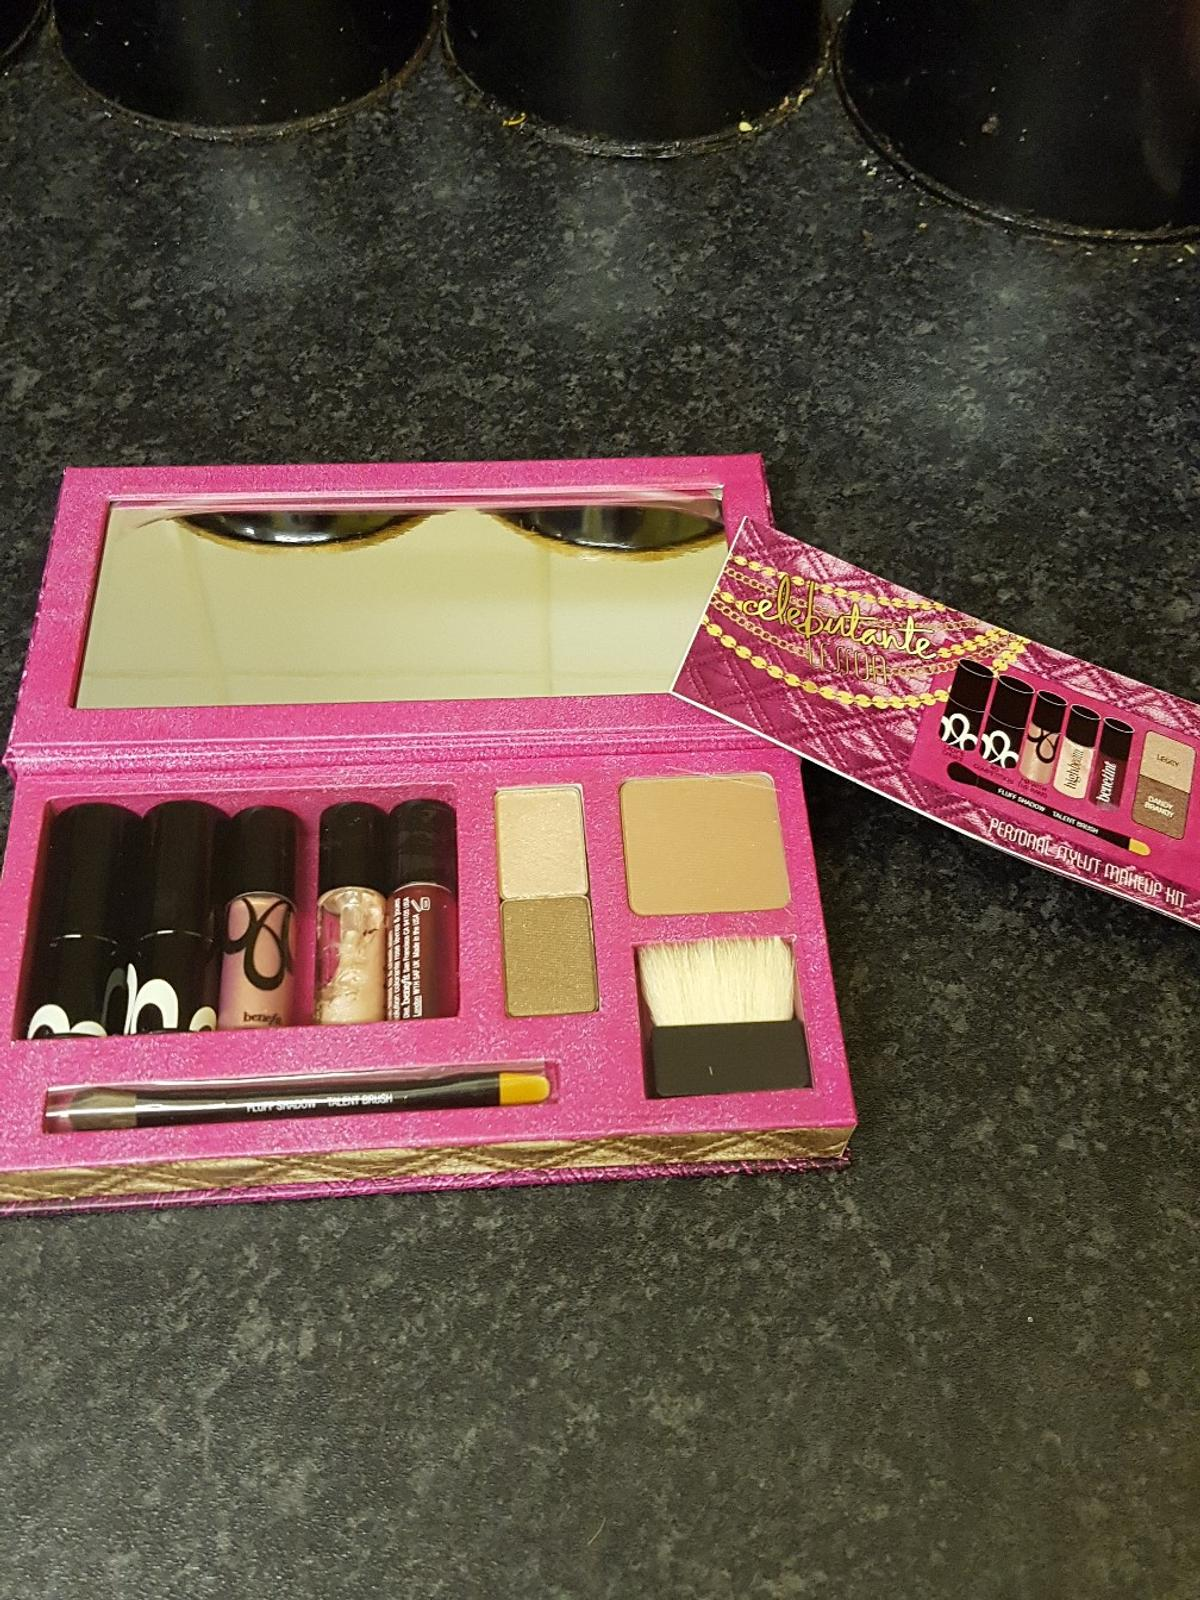 2 Benefit celebutante make up sets for sale